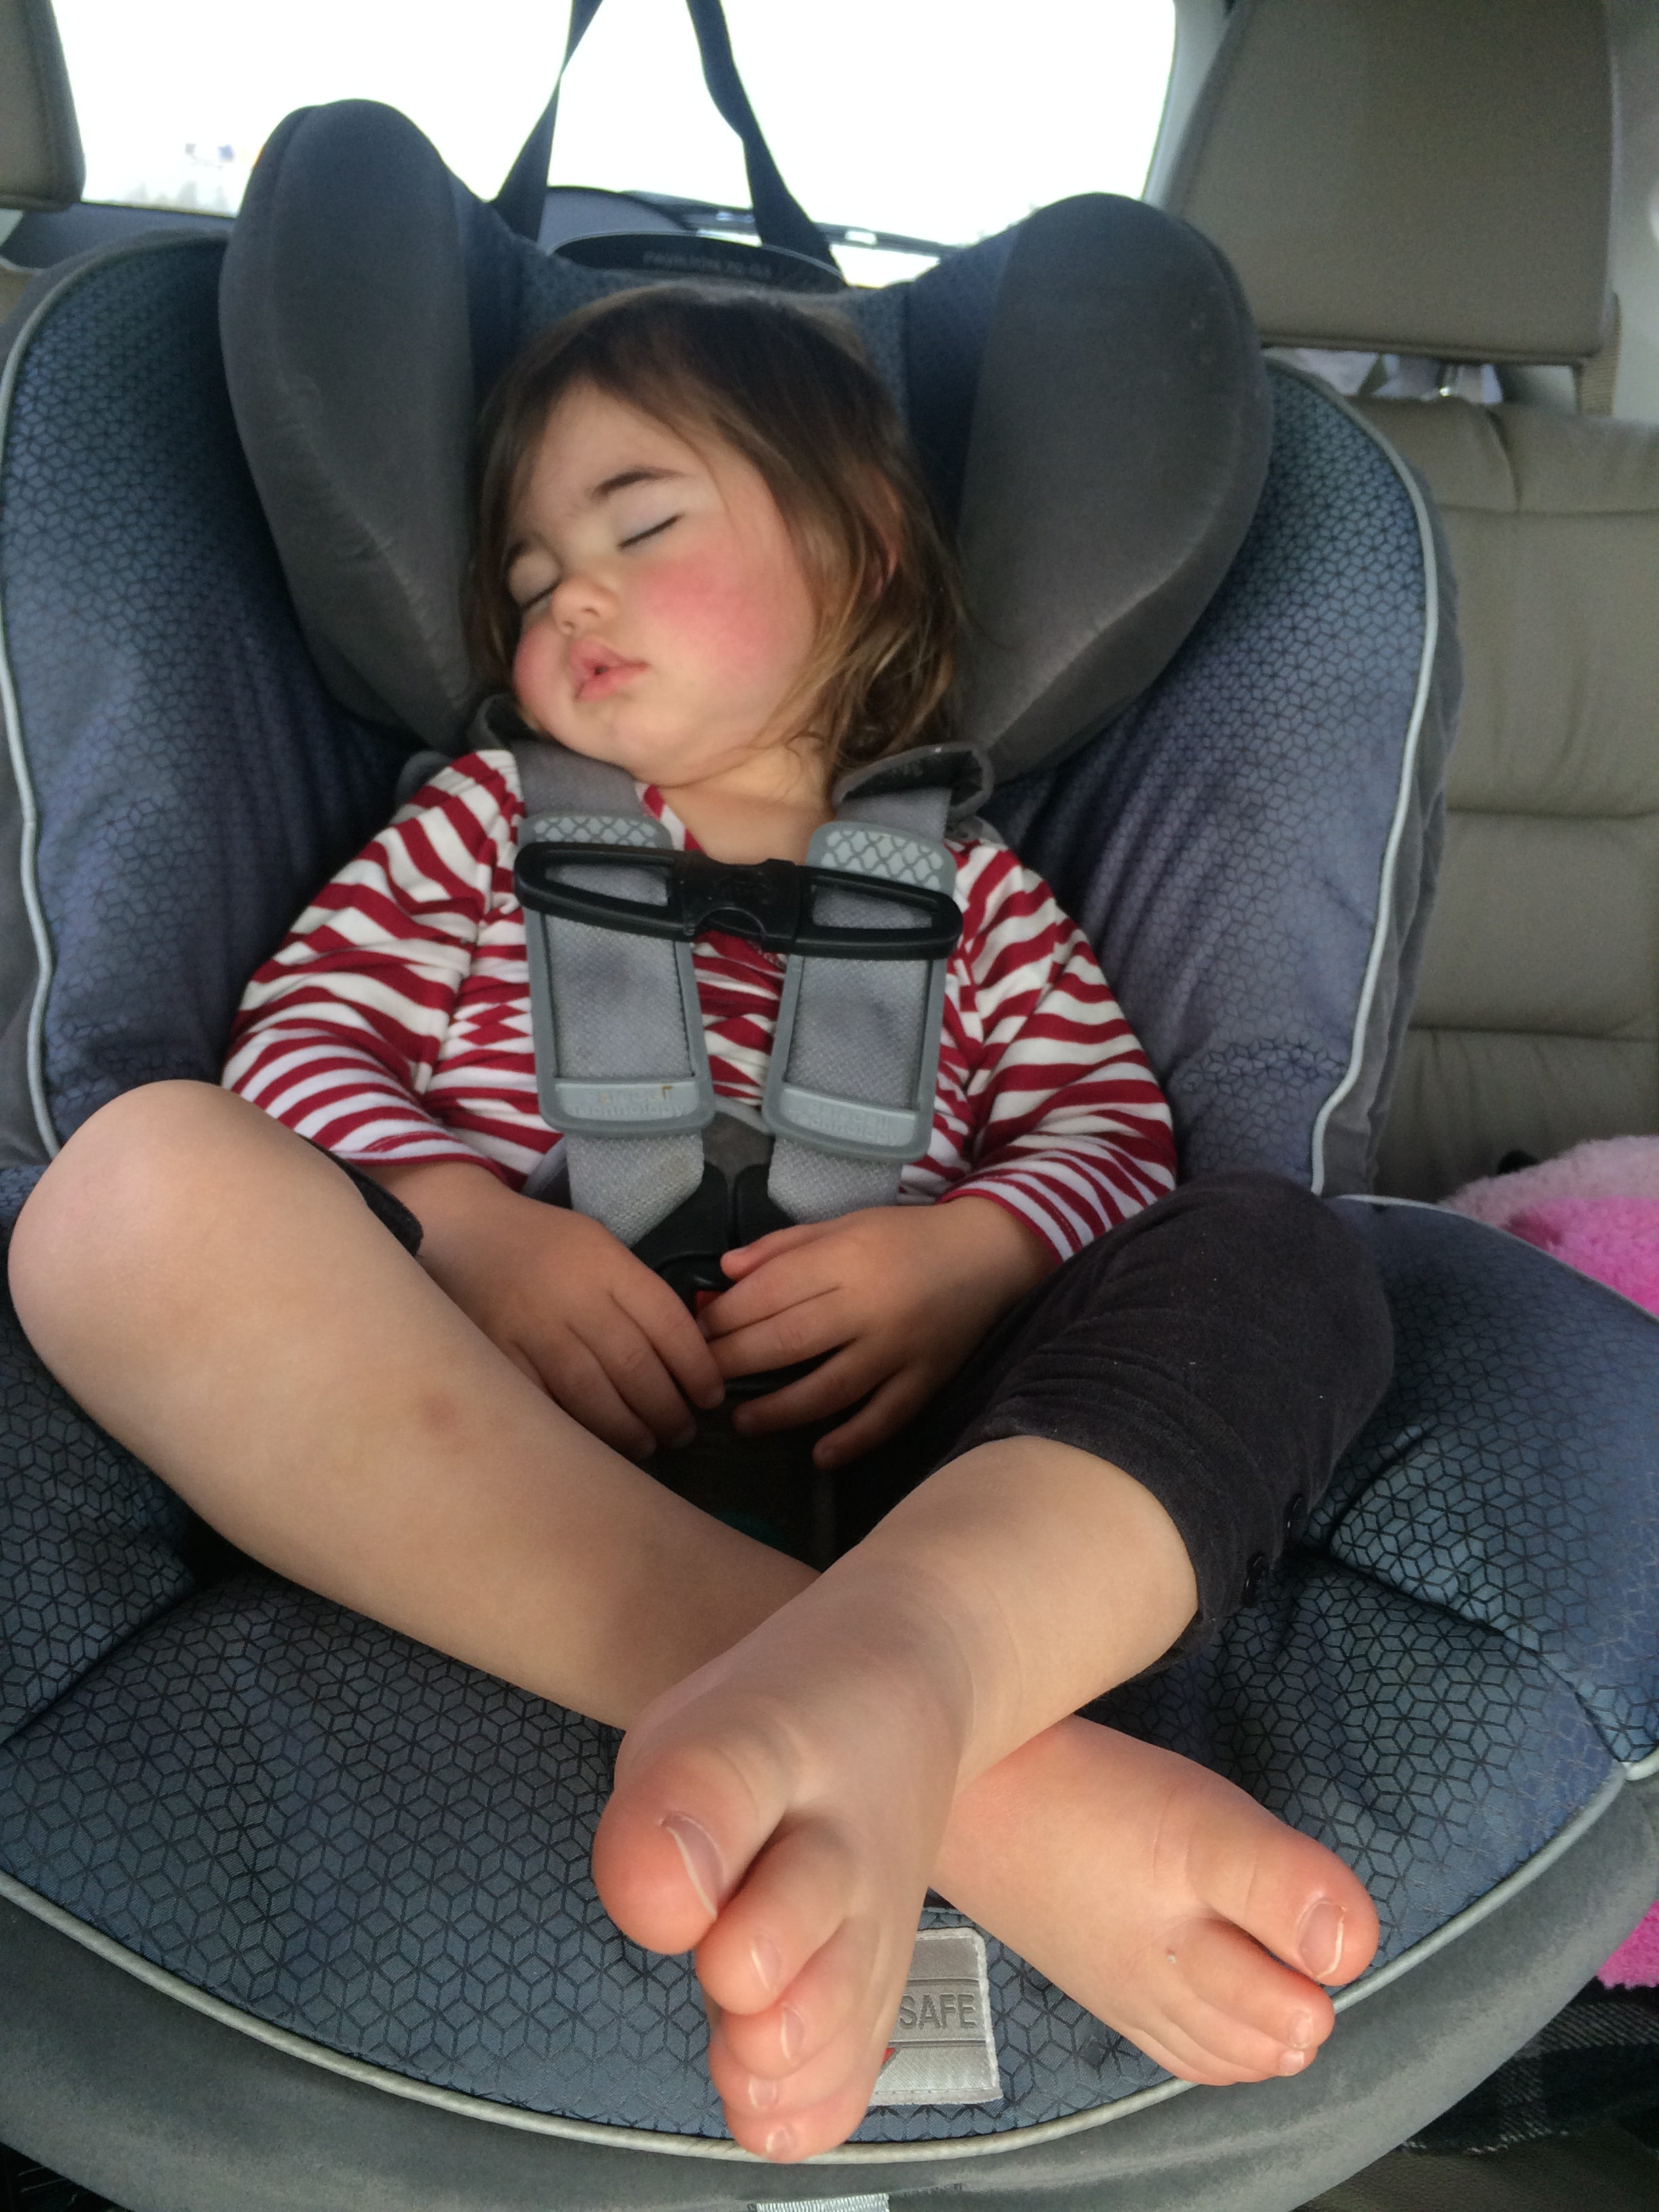 Car Seat Buckle Safety Basics on Car Seat Safety